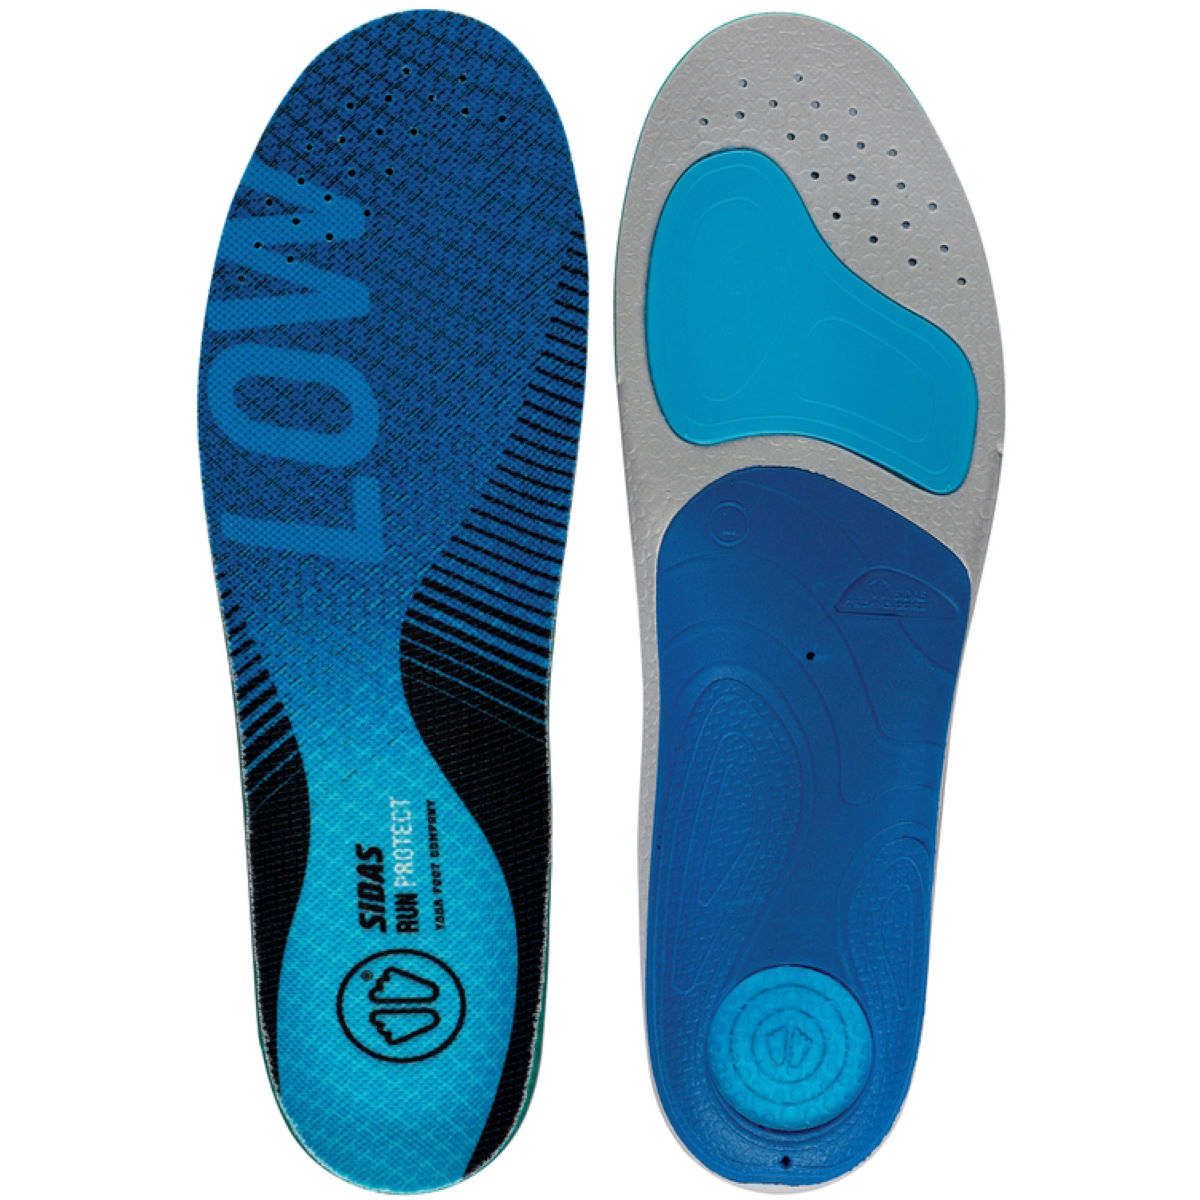 Sidas 3 Feet Low Arch Run protect insole - Plantillas